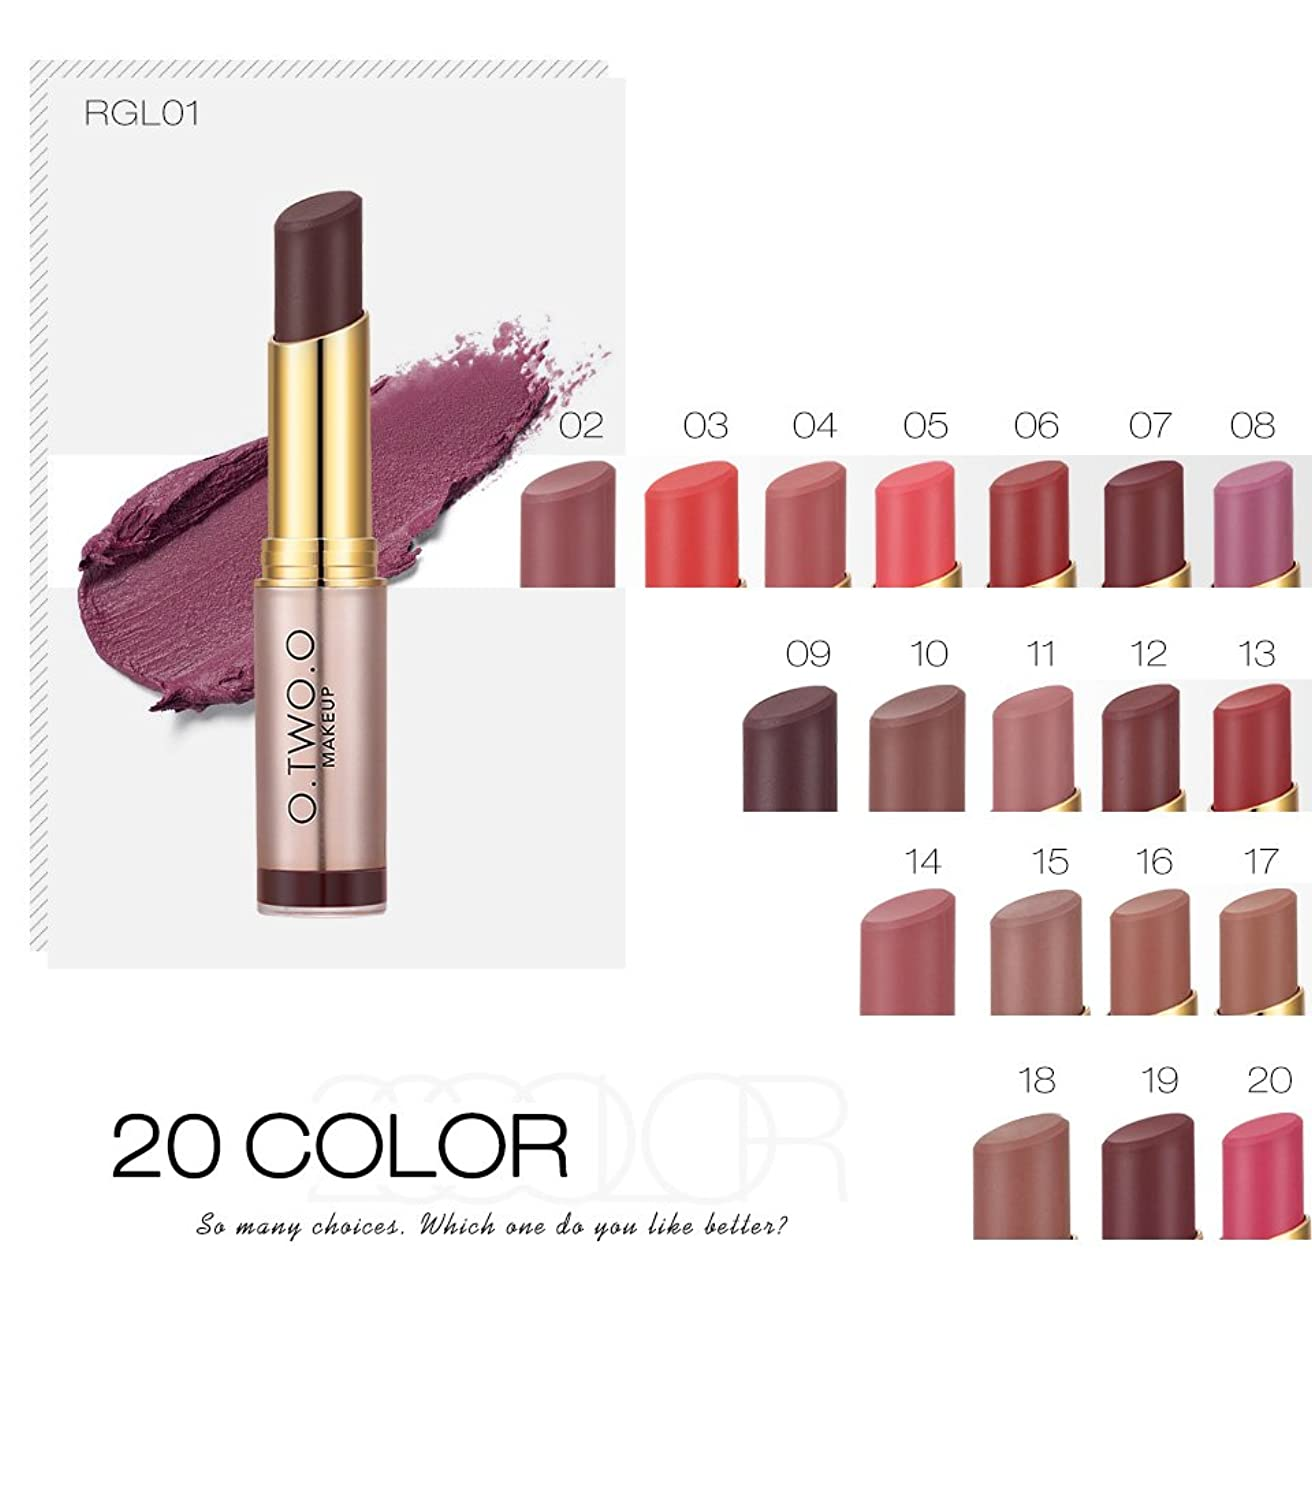 七面鳥コーデリアクスクス(RGL01) Brand Wholesale Beauty Makeup Lipstick Popular Colors Best Seller Long Lasting Lip Kit Matte Lip Cosmetics